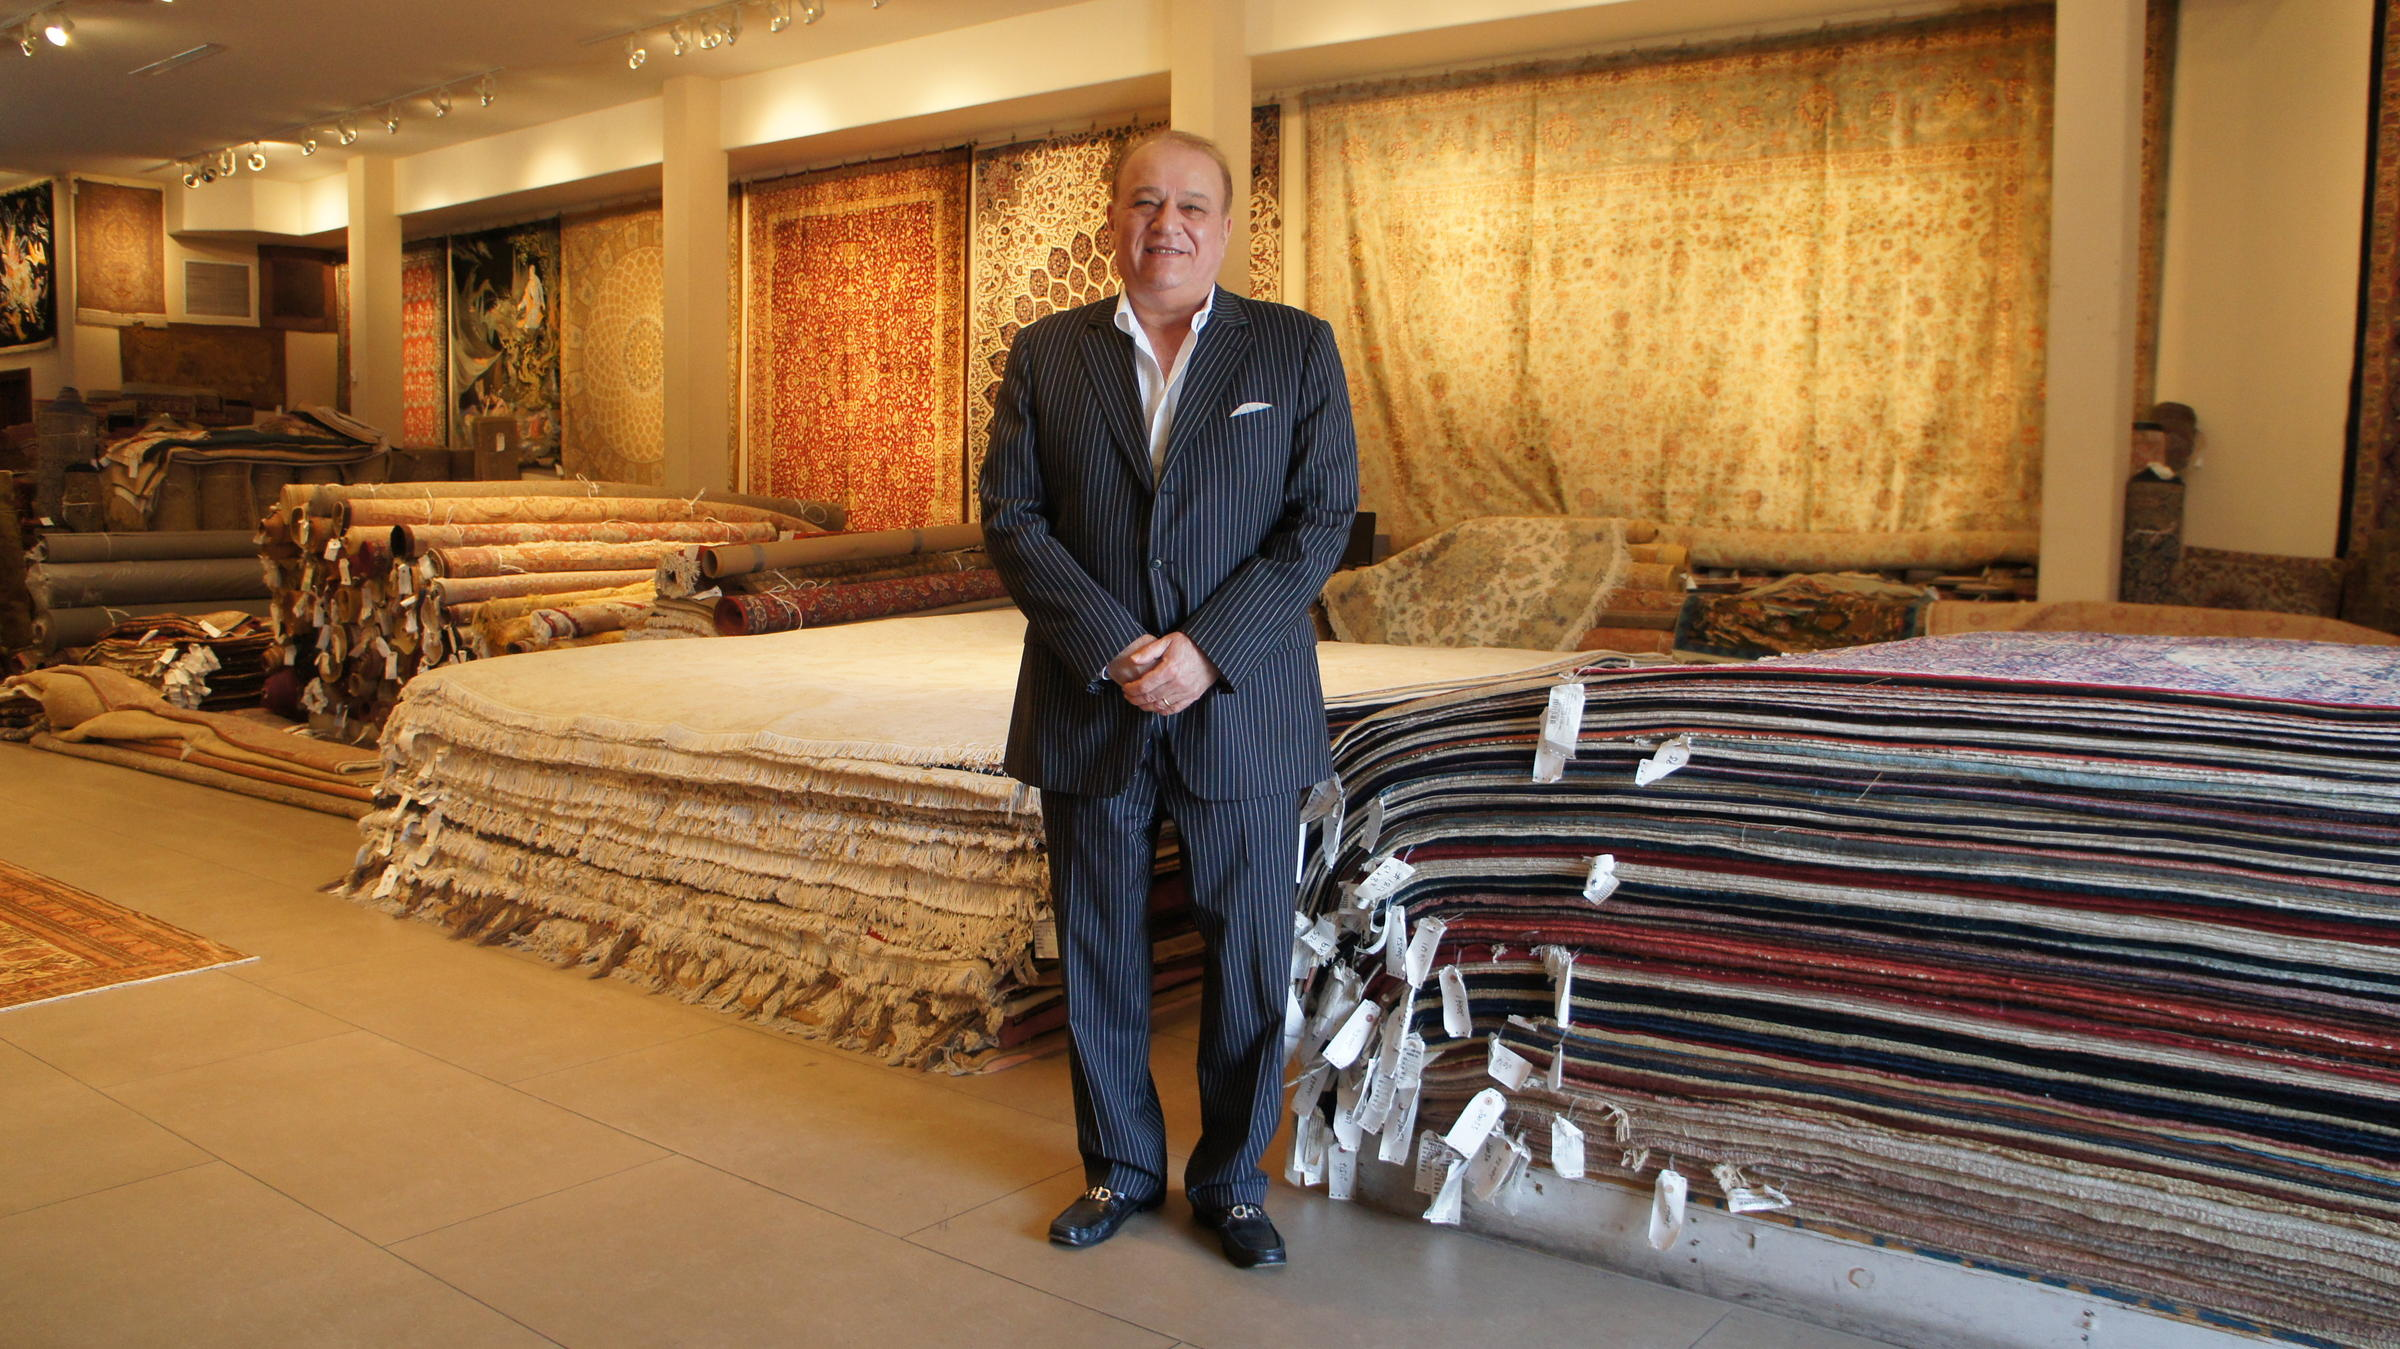 Alex Helmi Owns Damoka A Persian Rug In Los Angeles He Hopes His Business Will Benefit From The Lifting Of Us Trade Sanctions Against Iran